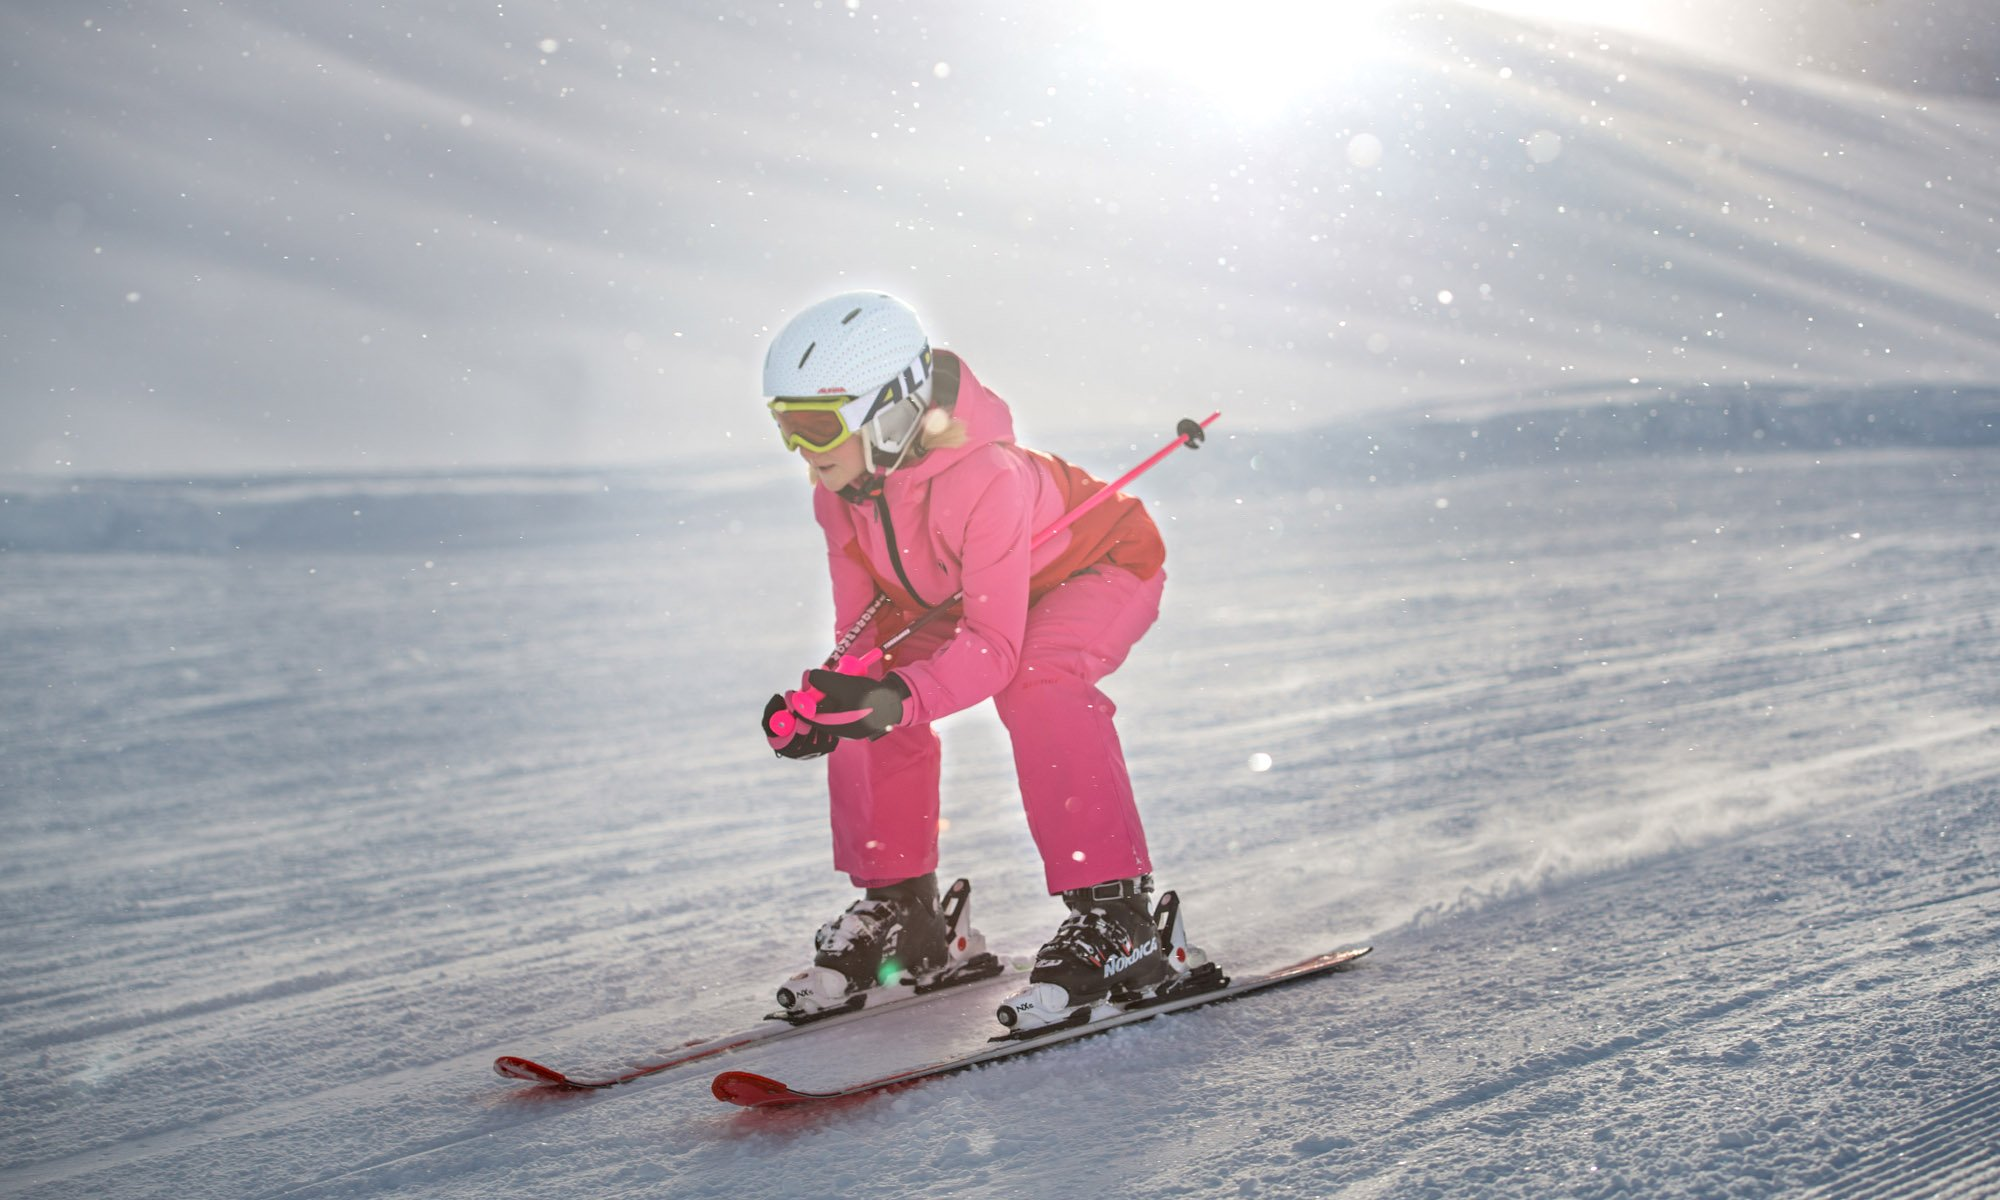 A young girl skiing in a pink outfit.